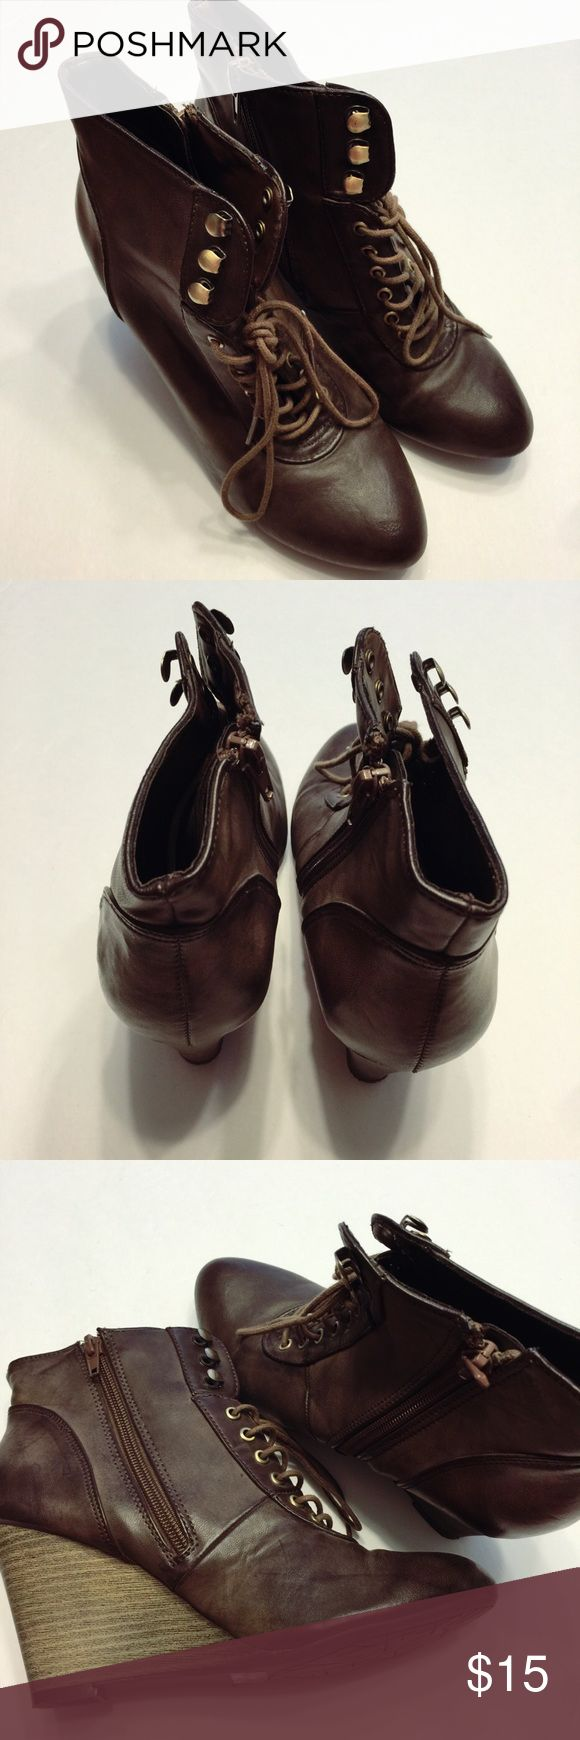 Maurices Ankel Boots Size: 6.5 -gently used, but in great condition Maurices Shoes Ankle Boots & Booties